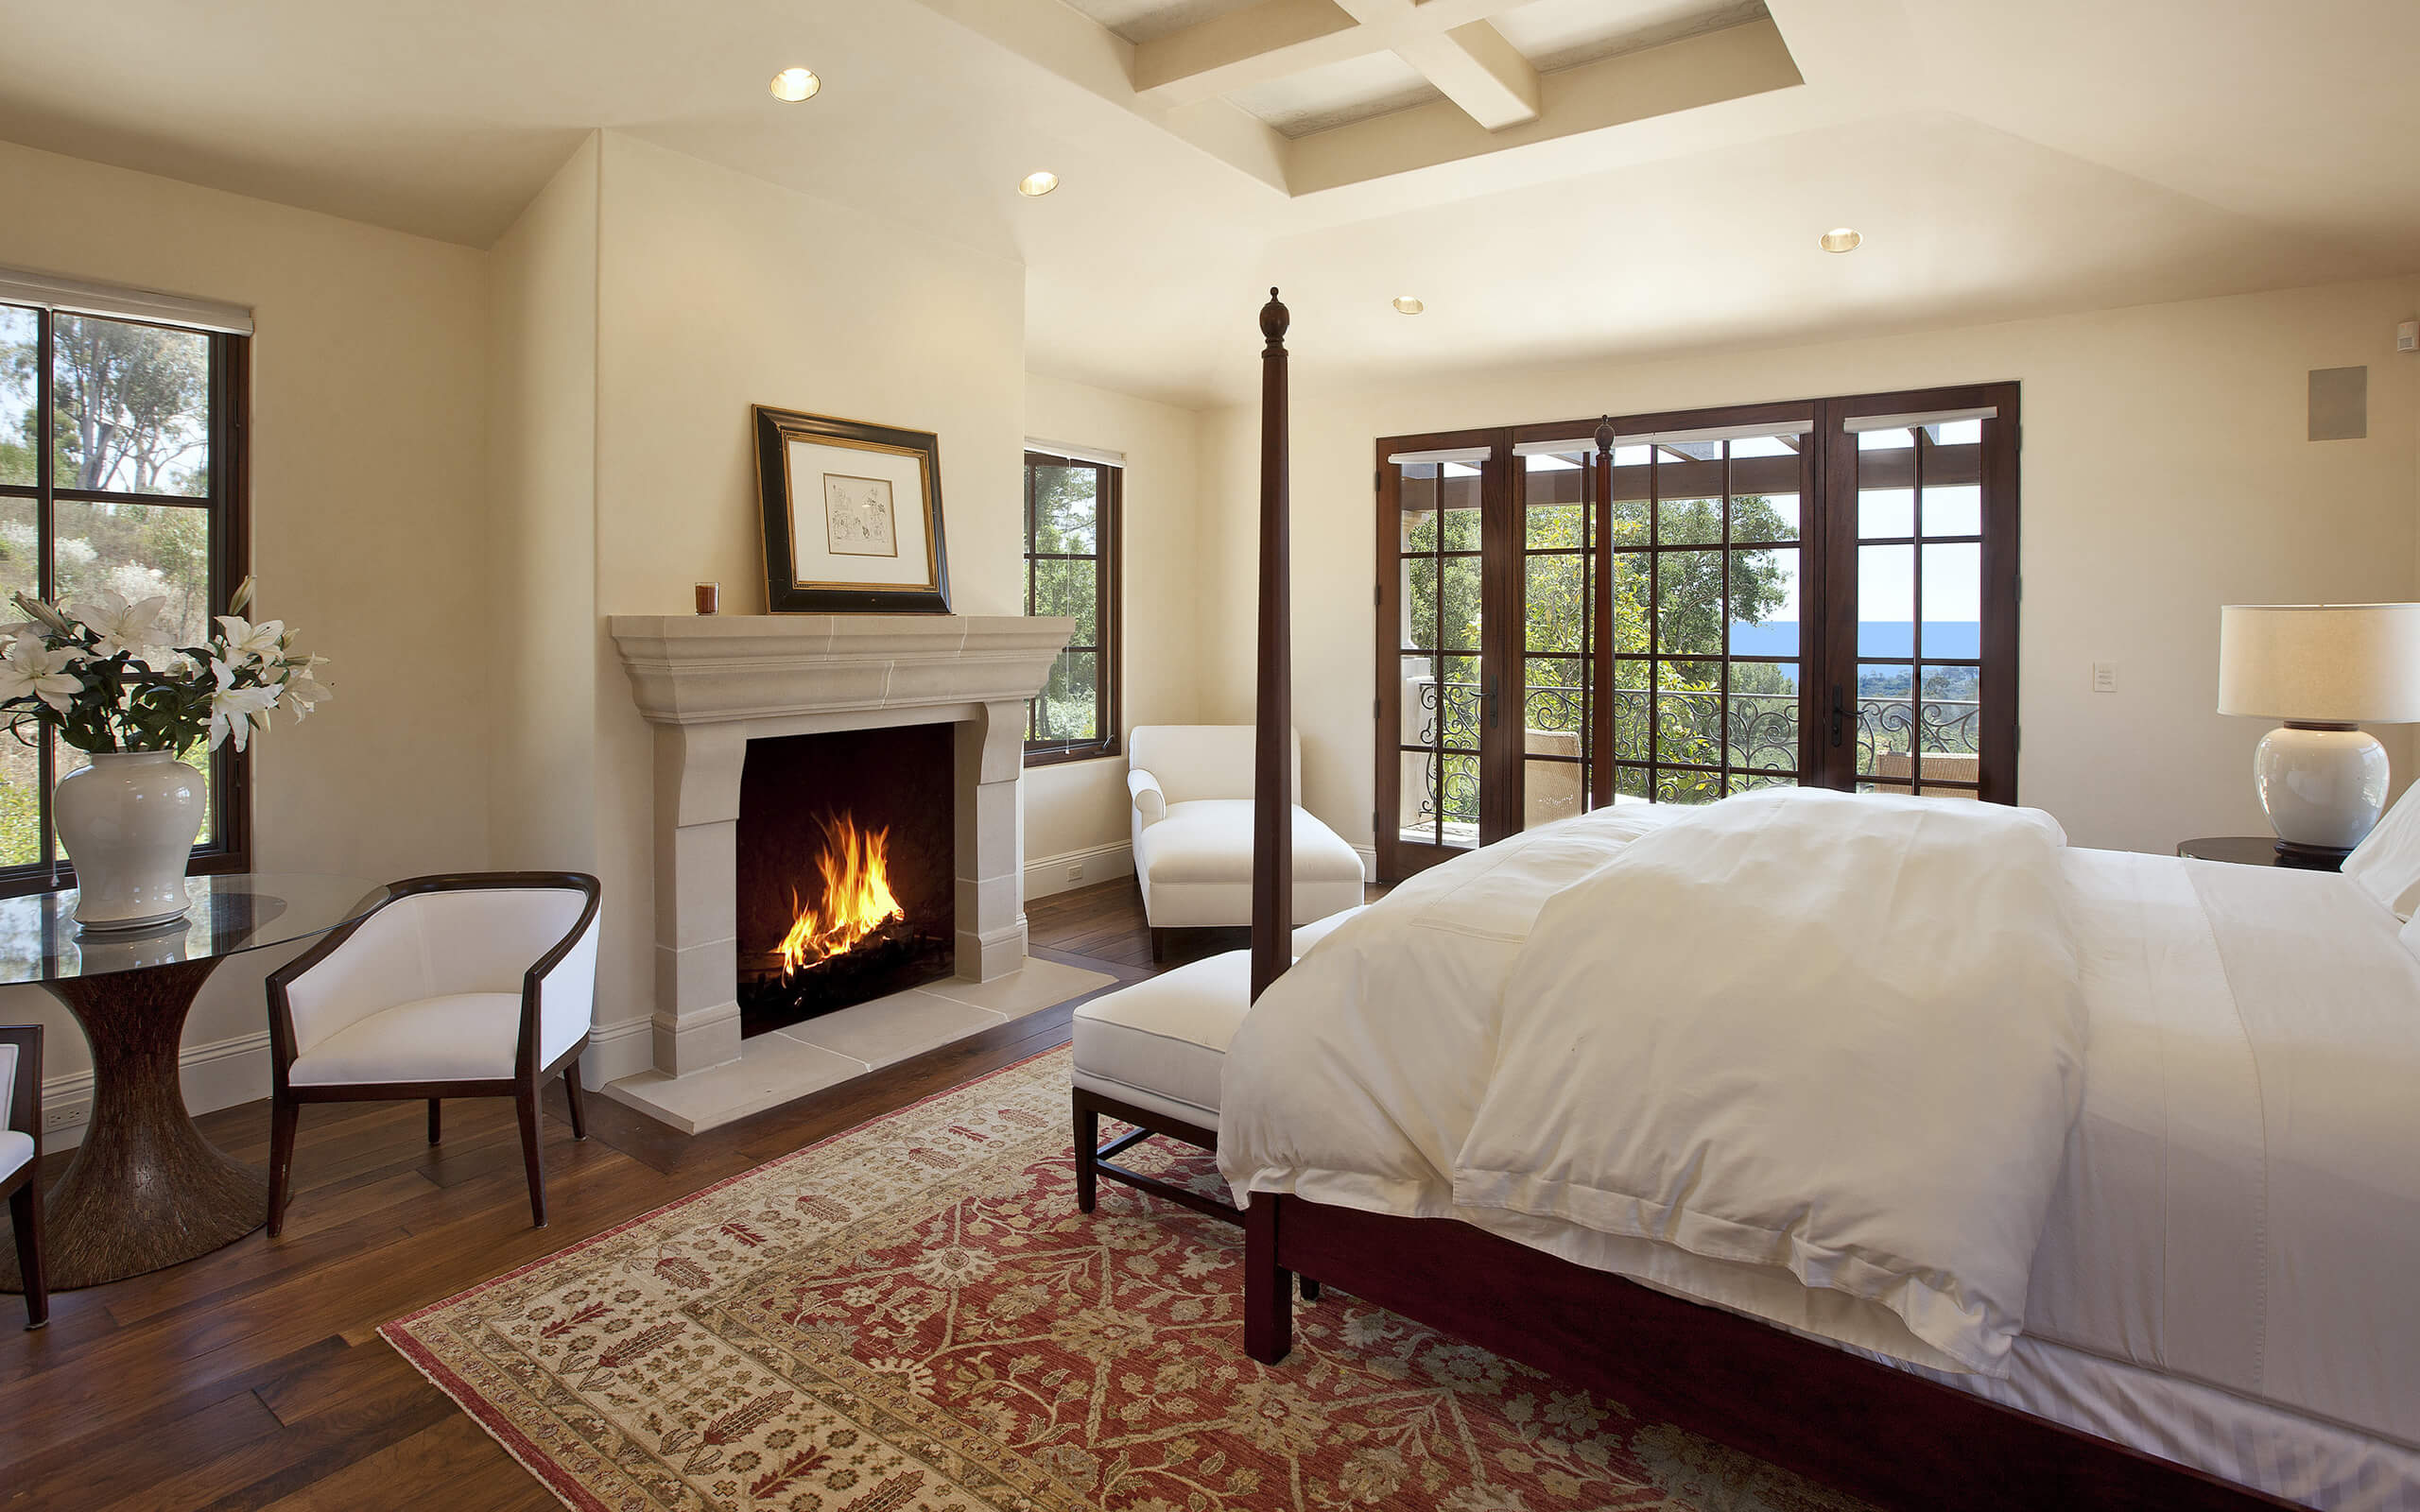 A modern approach to master bedrooms with fireplaces. In this photo is a stone made fireplace with white chairs, white bed cover sheets, and a colorful rug.